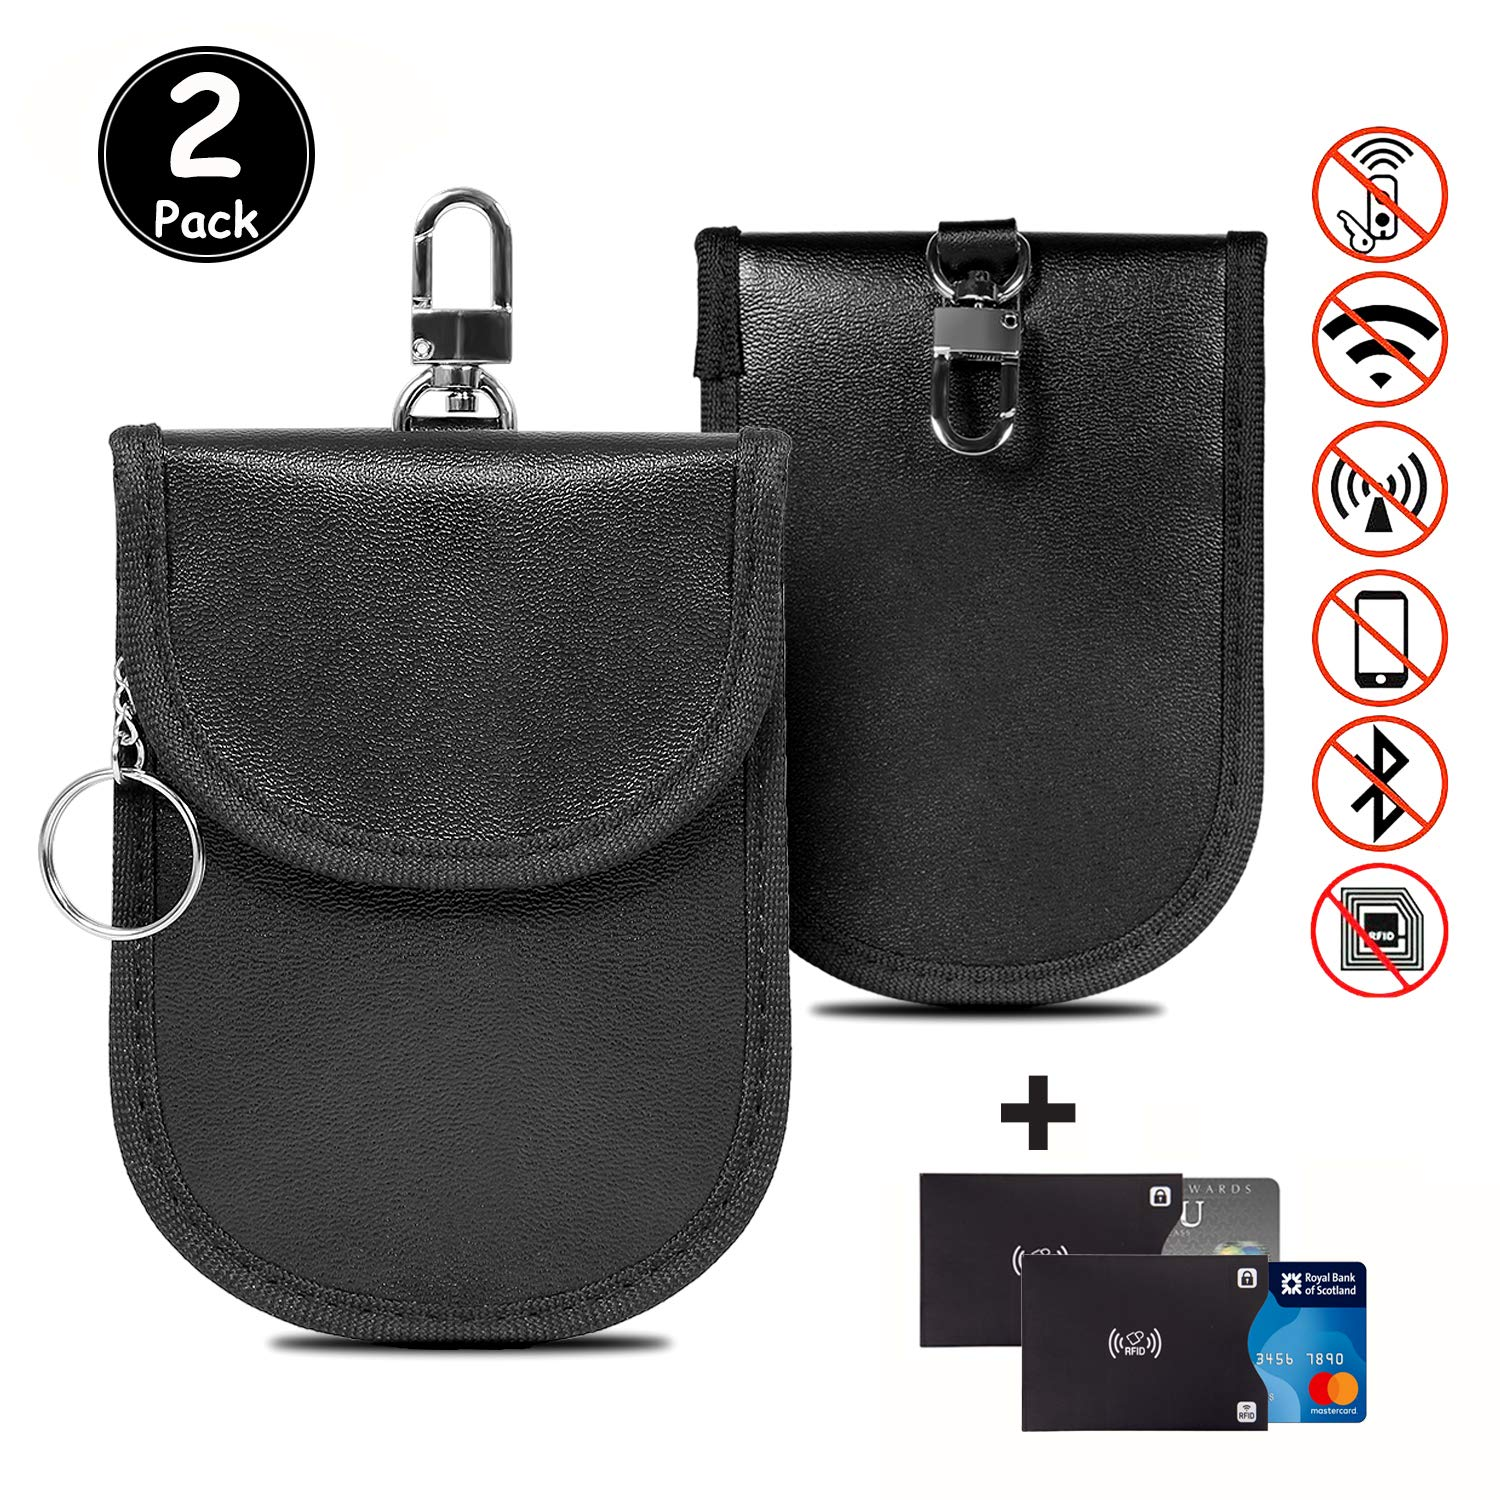 2 PACK ZTXPRO Car Key Signal Blocker Case RFID Signal Blocking Pouch Dual Layer Faraday Bag for Blocking Keyless Entry Fob Guard Anti-Theft WIFI//NFC//Mobile Phone Blocking PU Leather Red